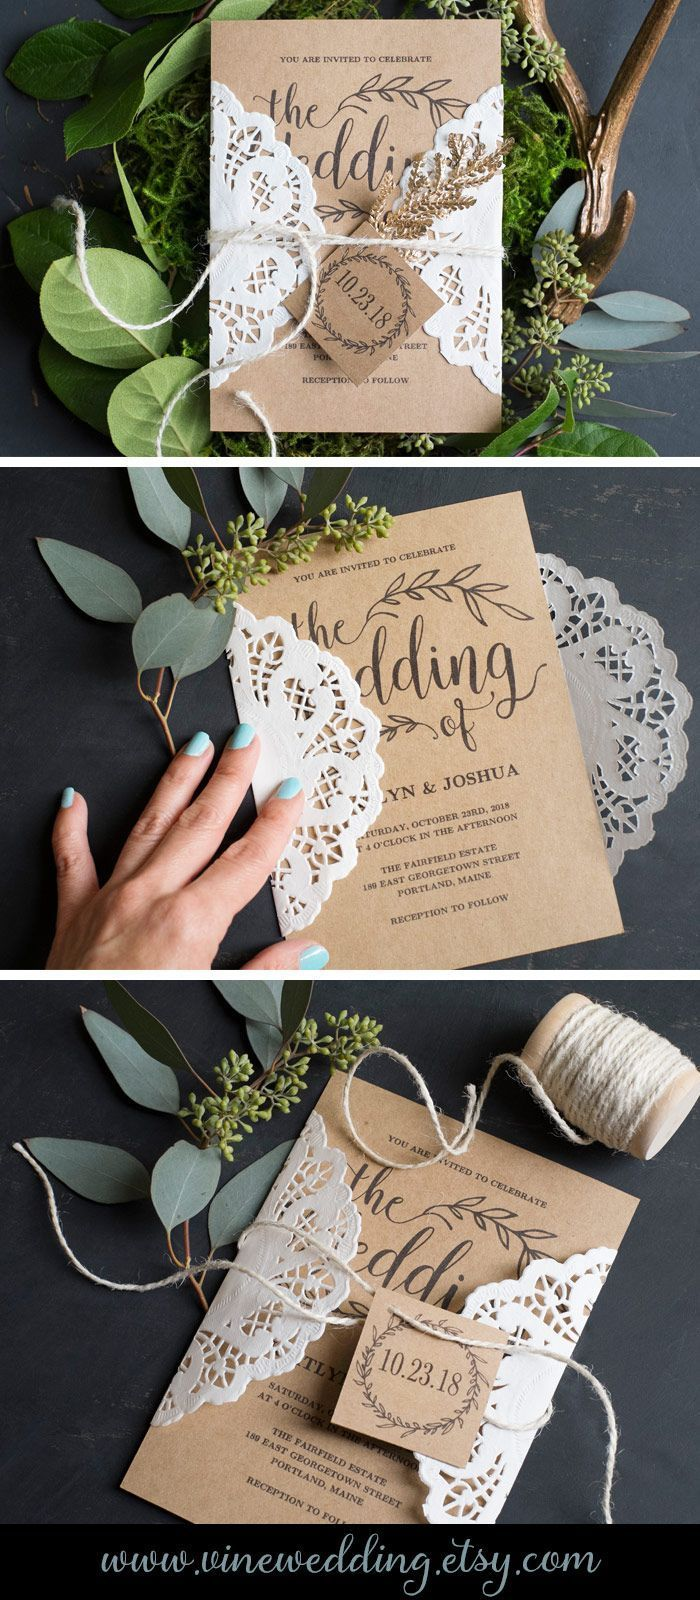 Easy and affordable DIY wedding invitation. #wedding #invitations #kraft # paper #rustic #diy #invitation #printable #vinewedding #budget #affordable #doiley